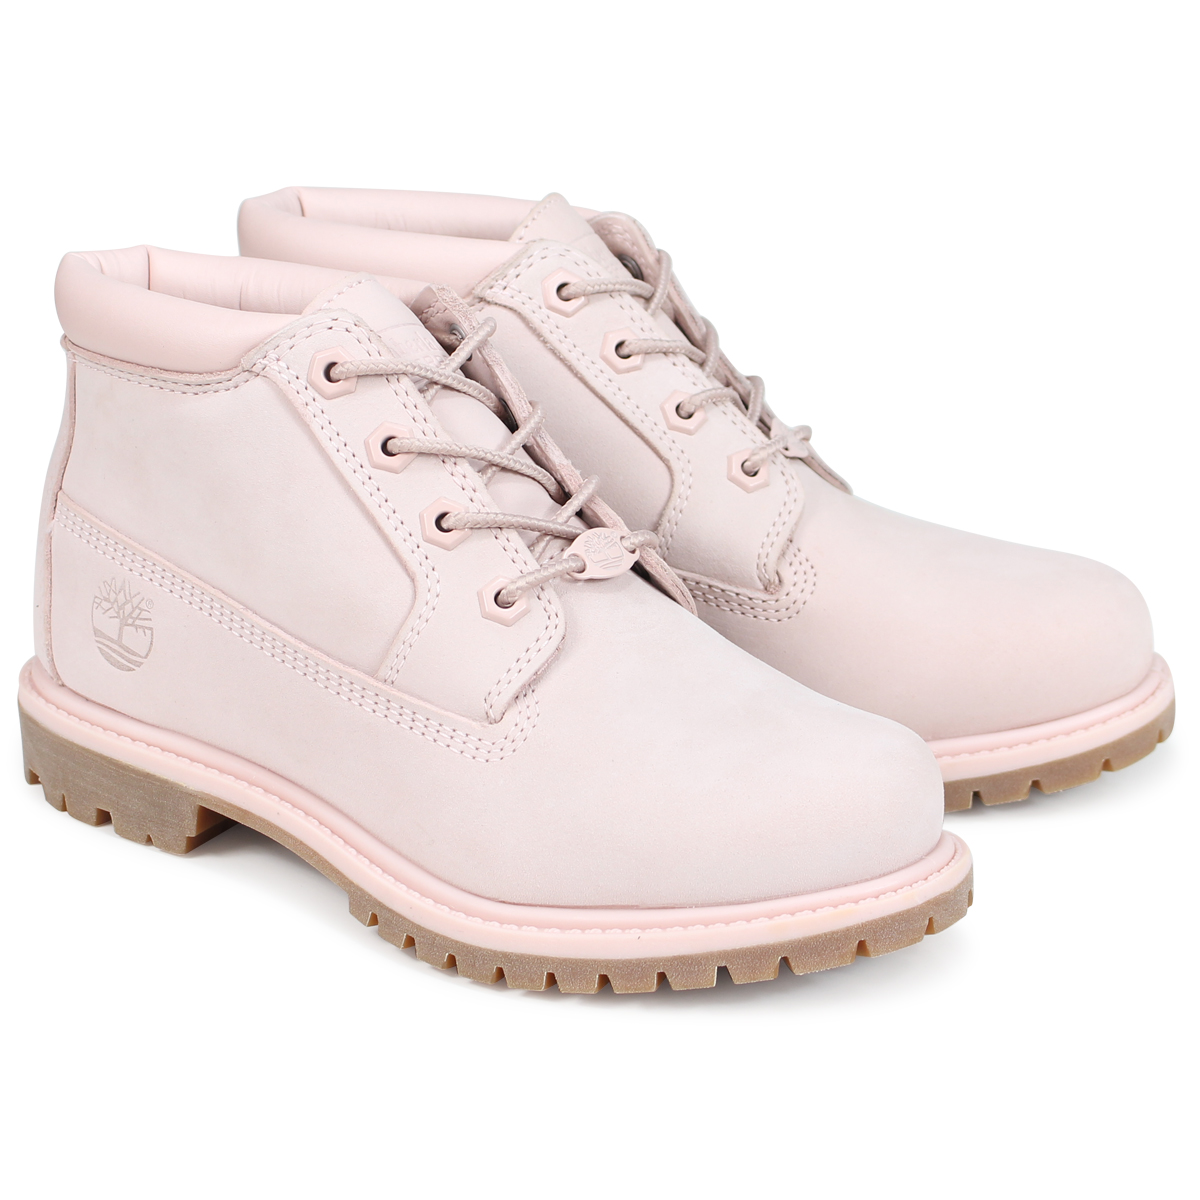 Timberland NELLIE CHUKKA DOUBLE ティンバーランド チャッカ レディース ブーツ A1S7S Wワイズ ライトピンク